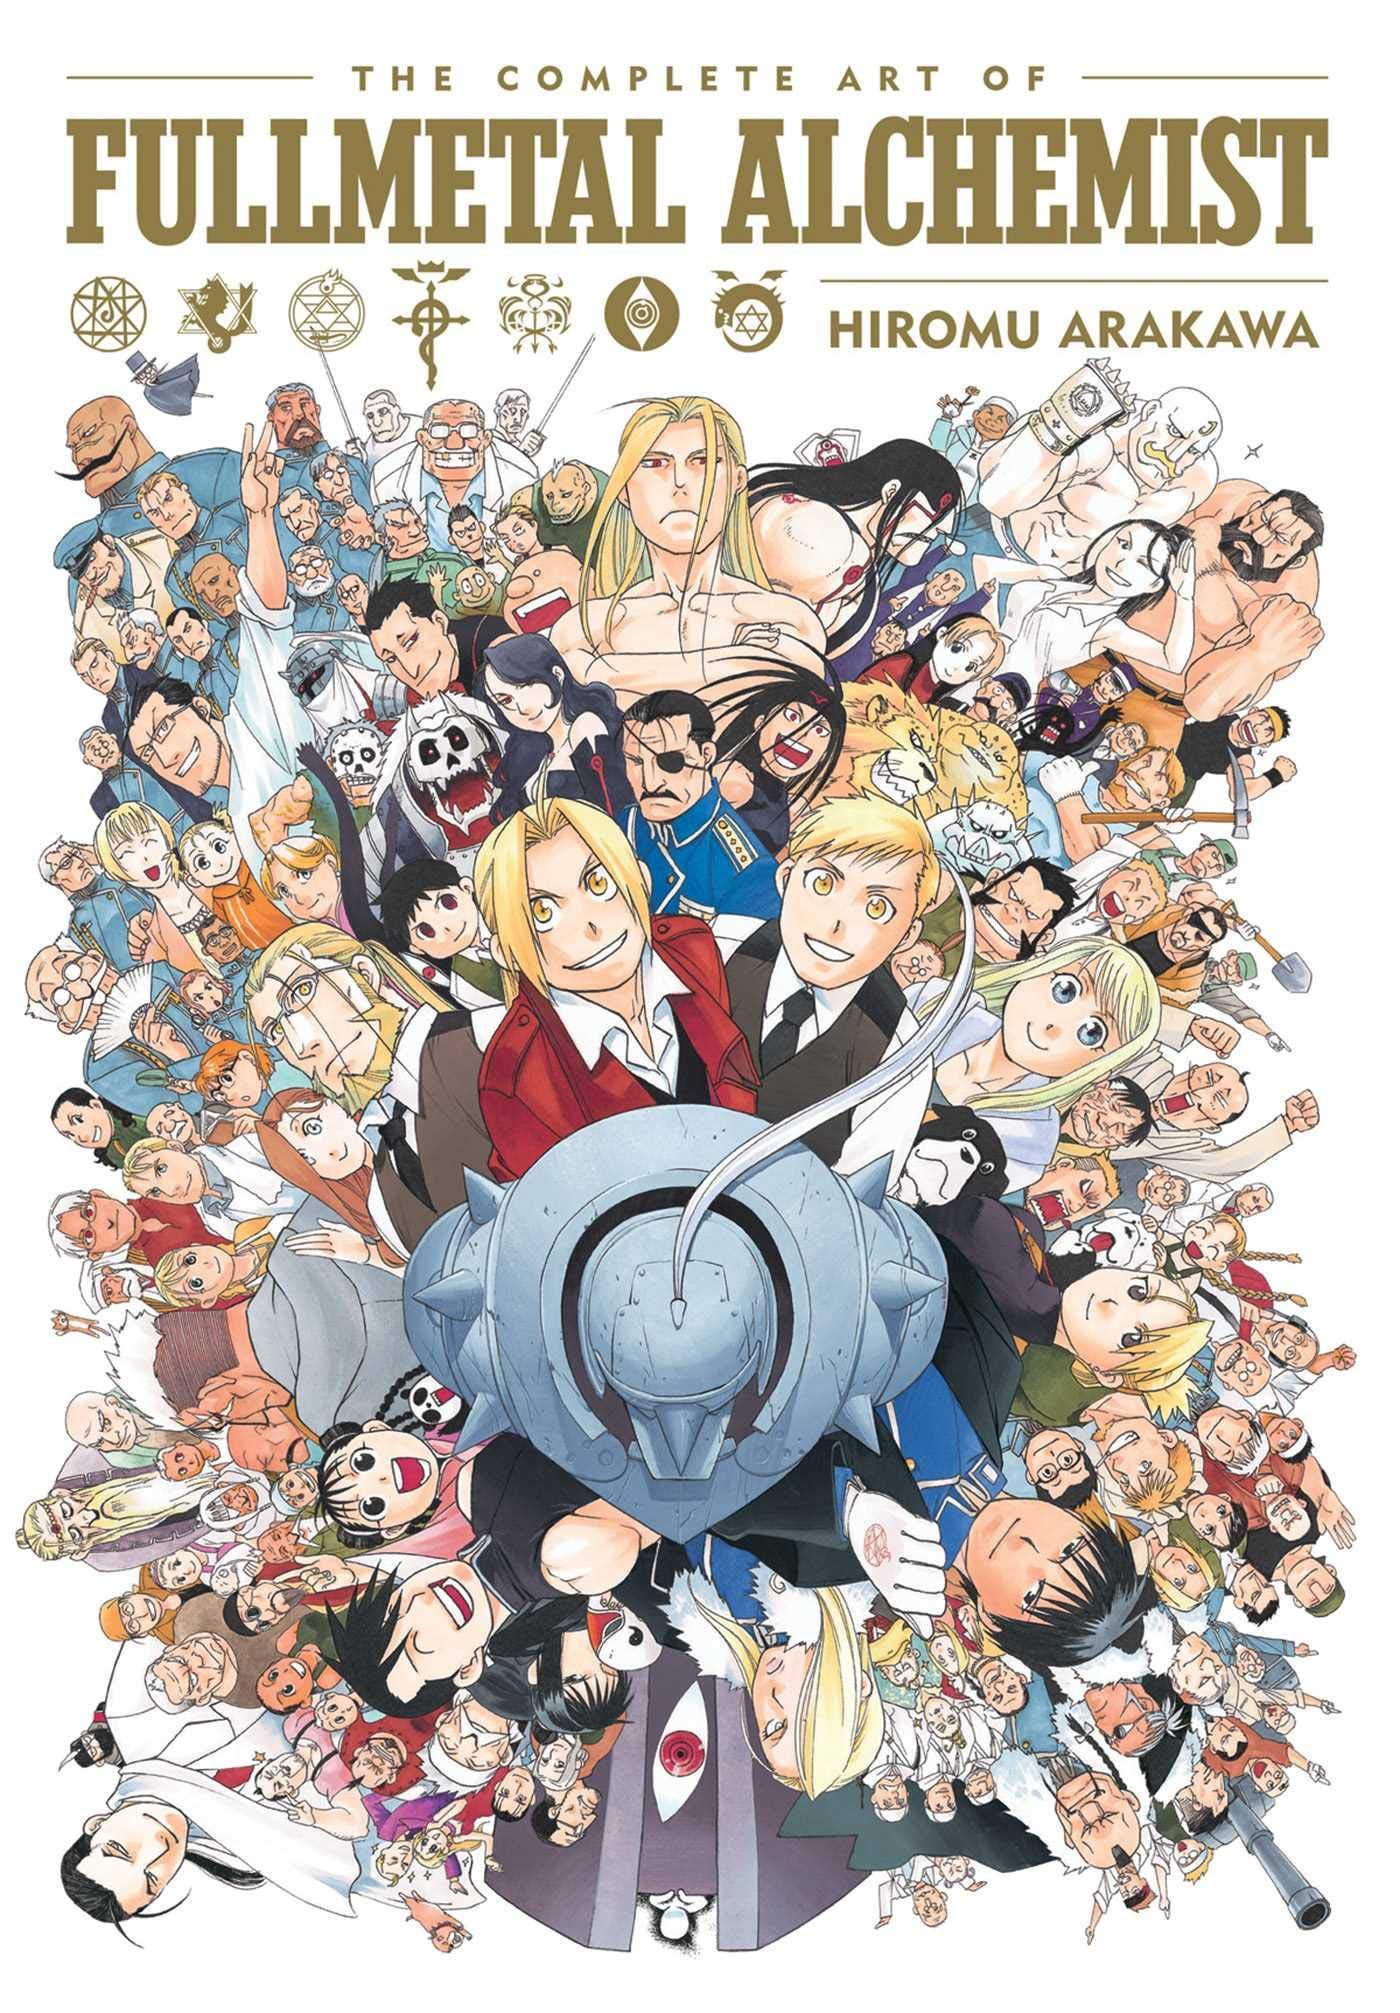 Fullmetal Alchemist Coloring Pages | Full metal alchemist ... | 2013x1400